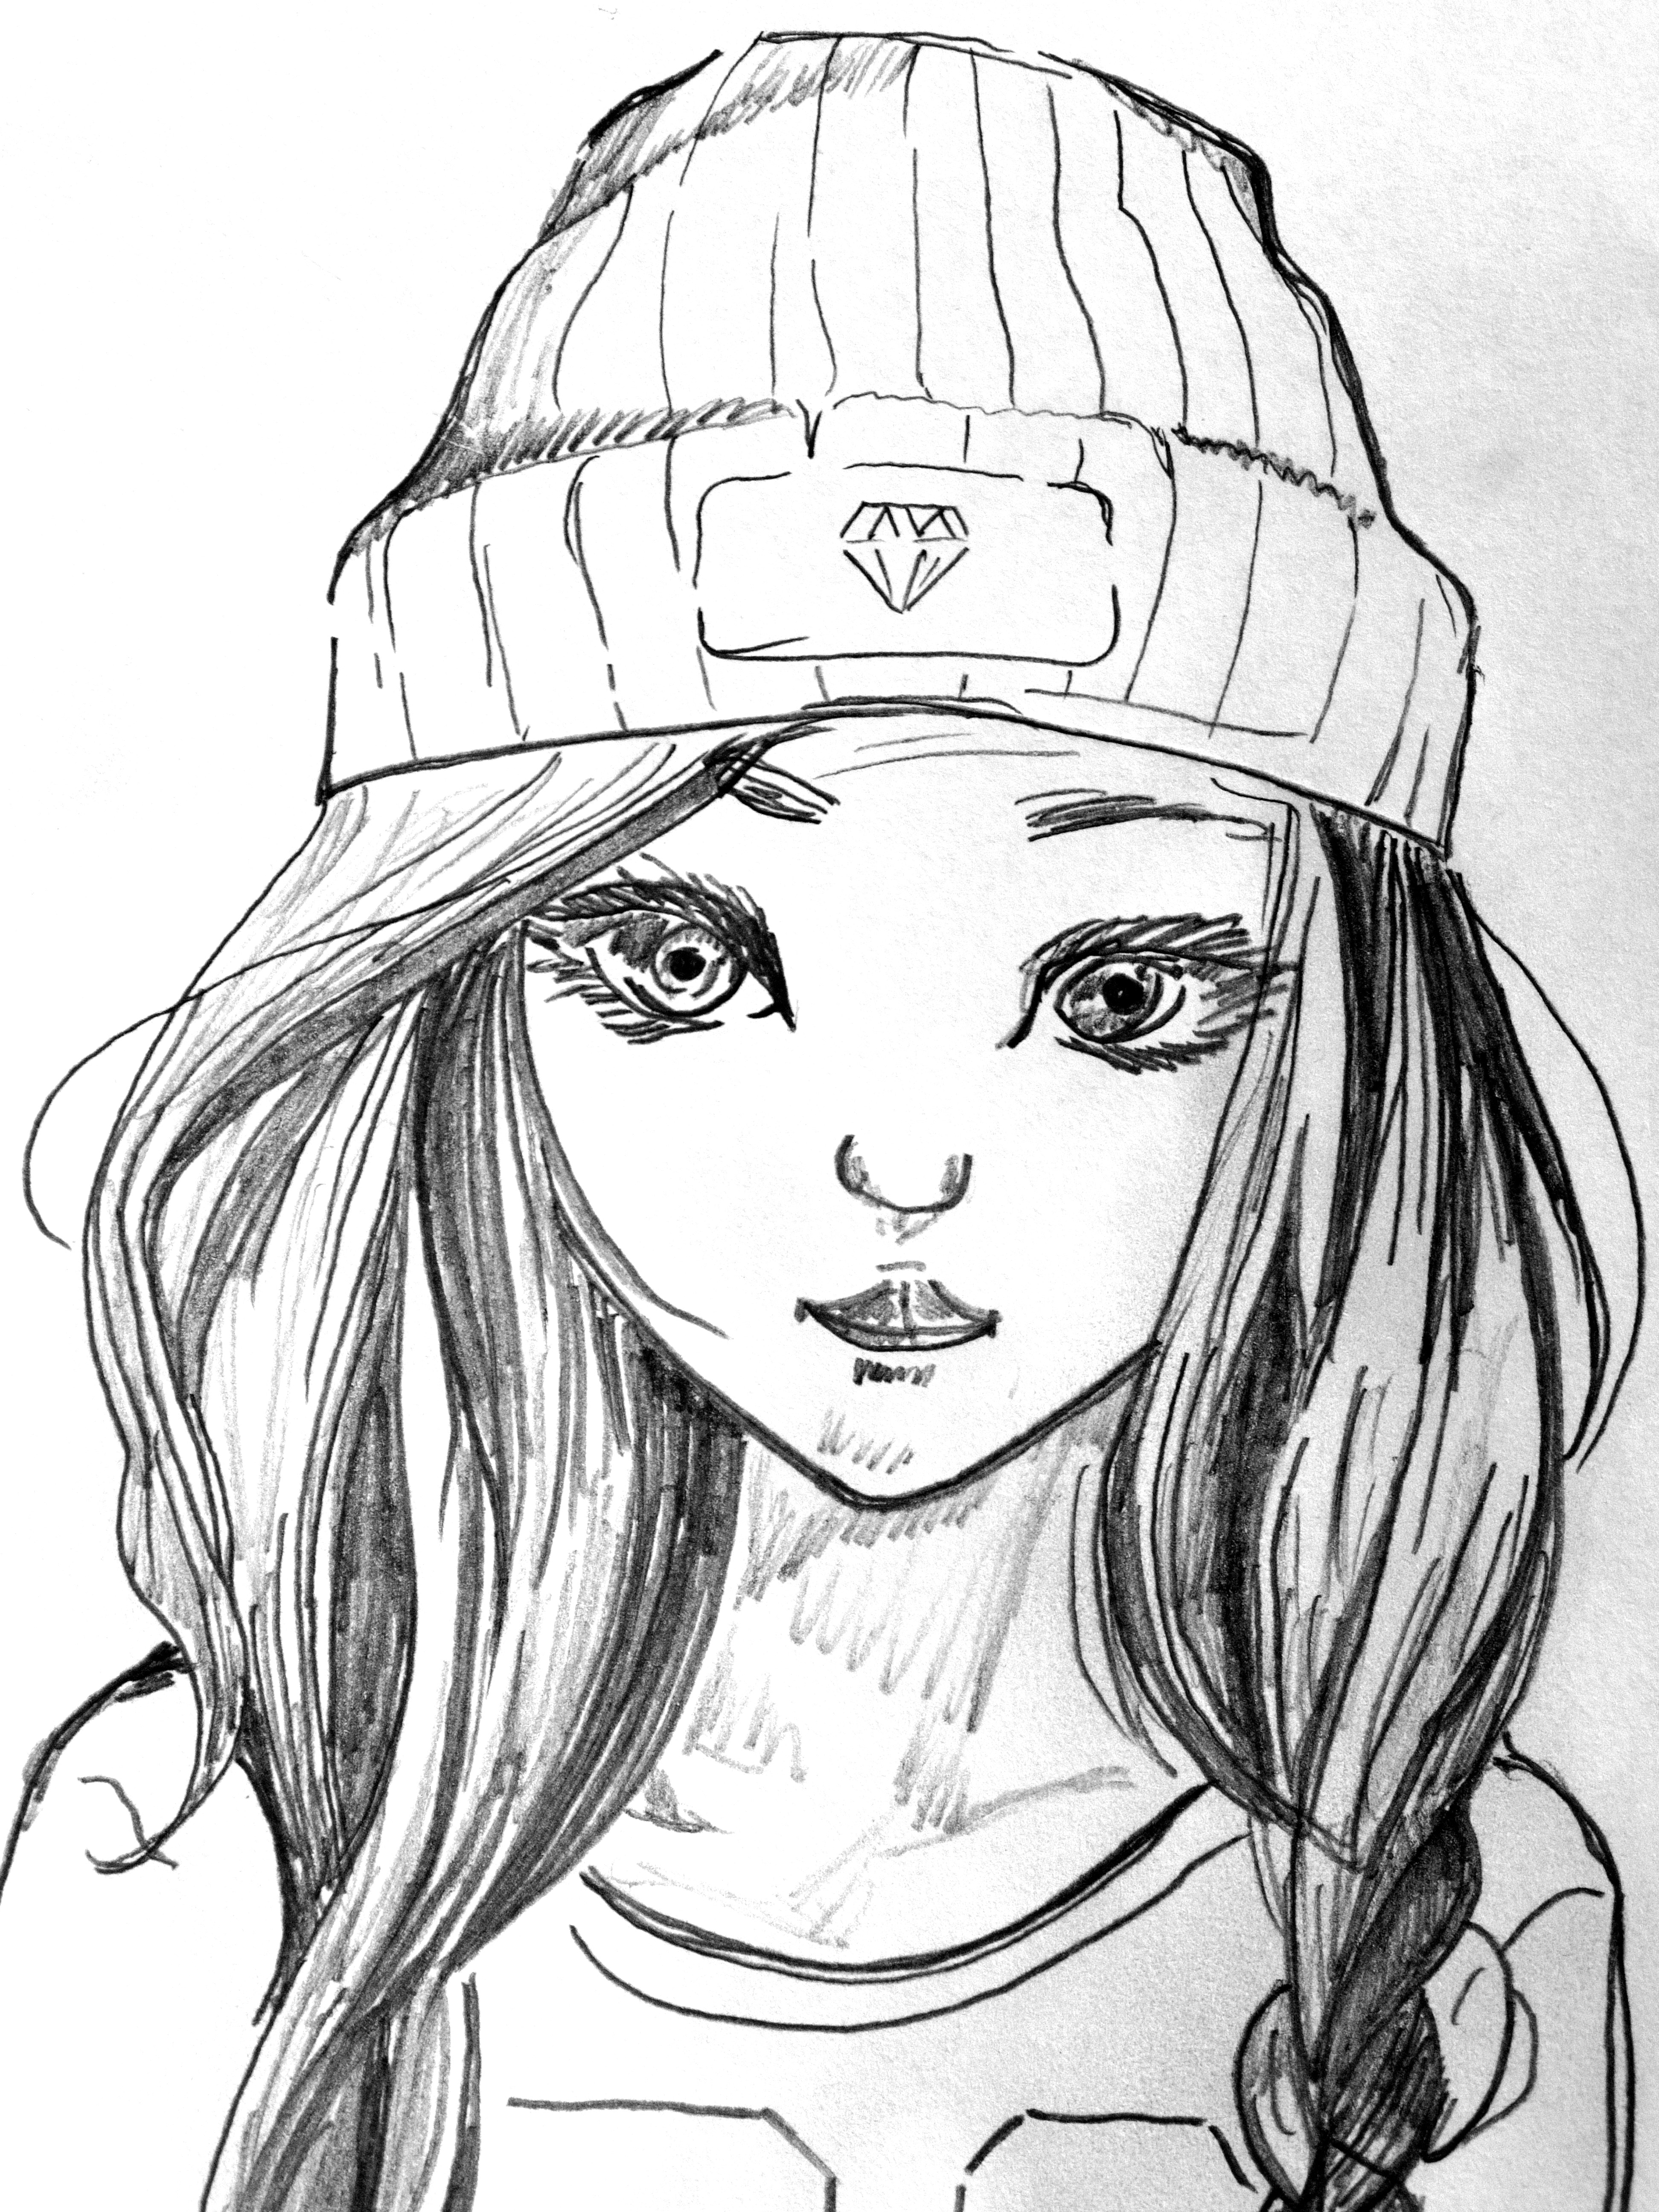 3888x5184 Woman With Knit Cap Sketch Free Image Peakpx